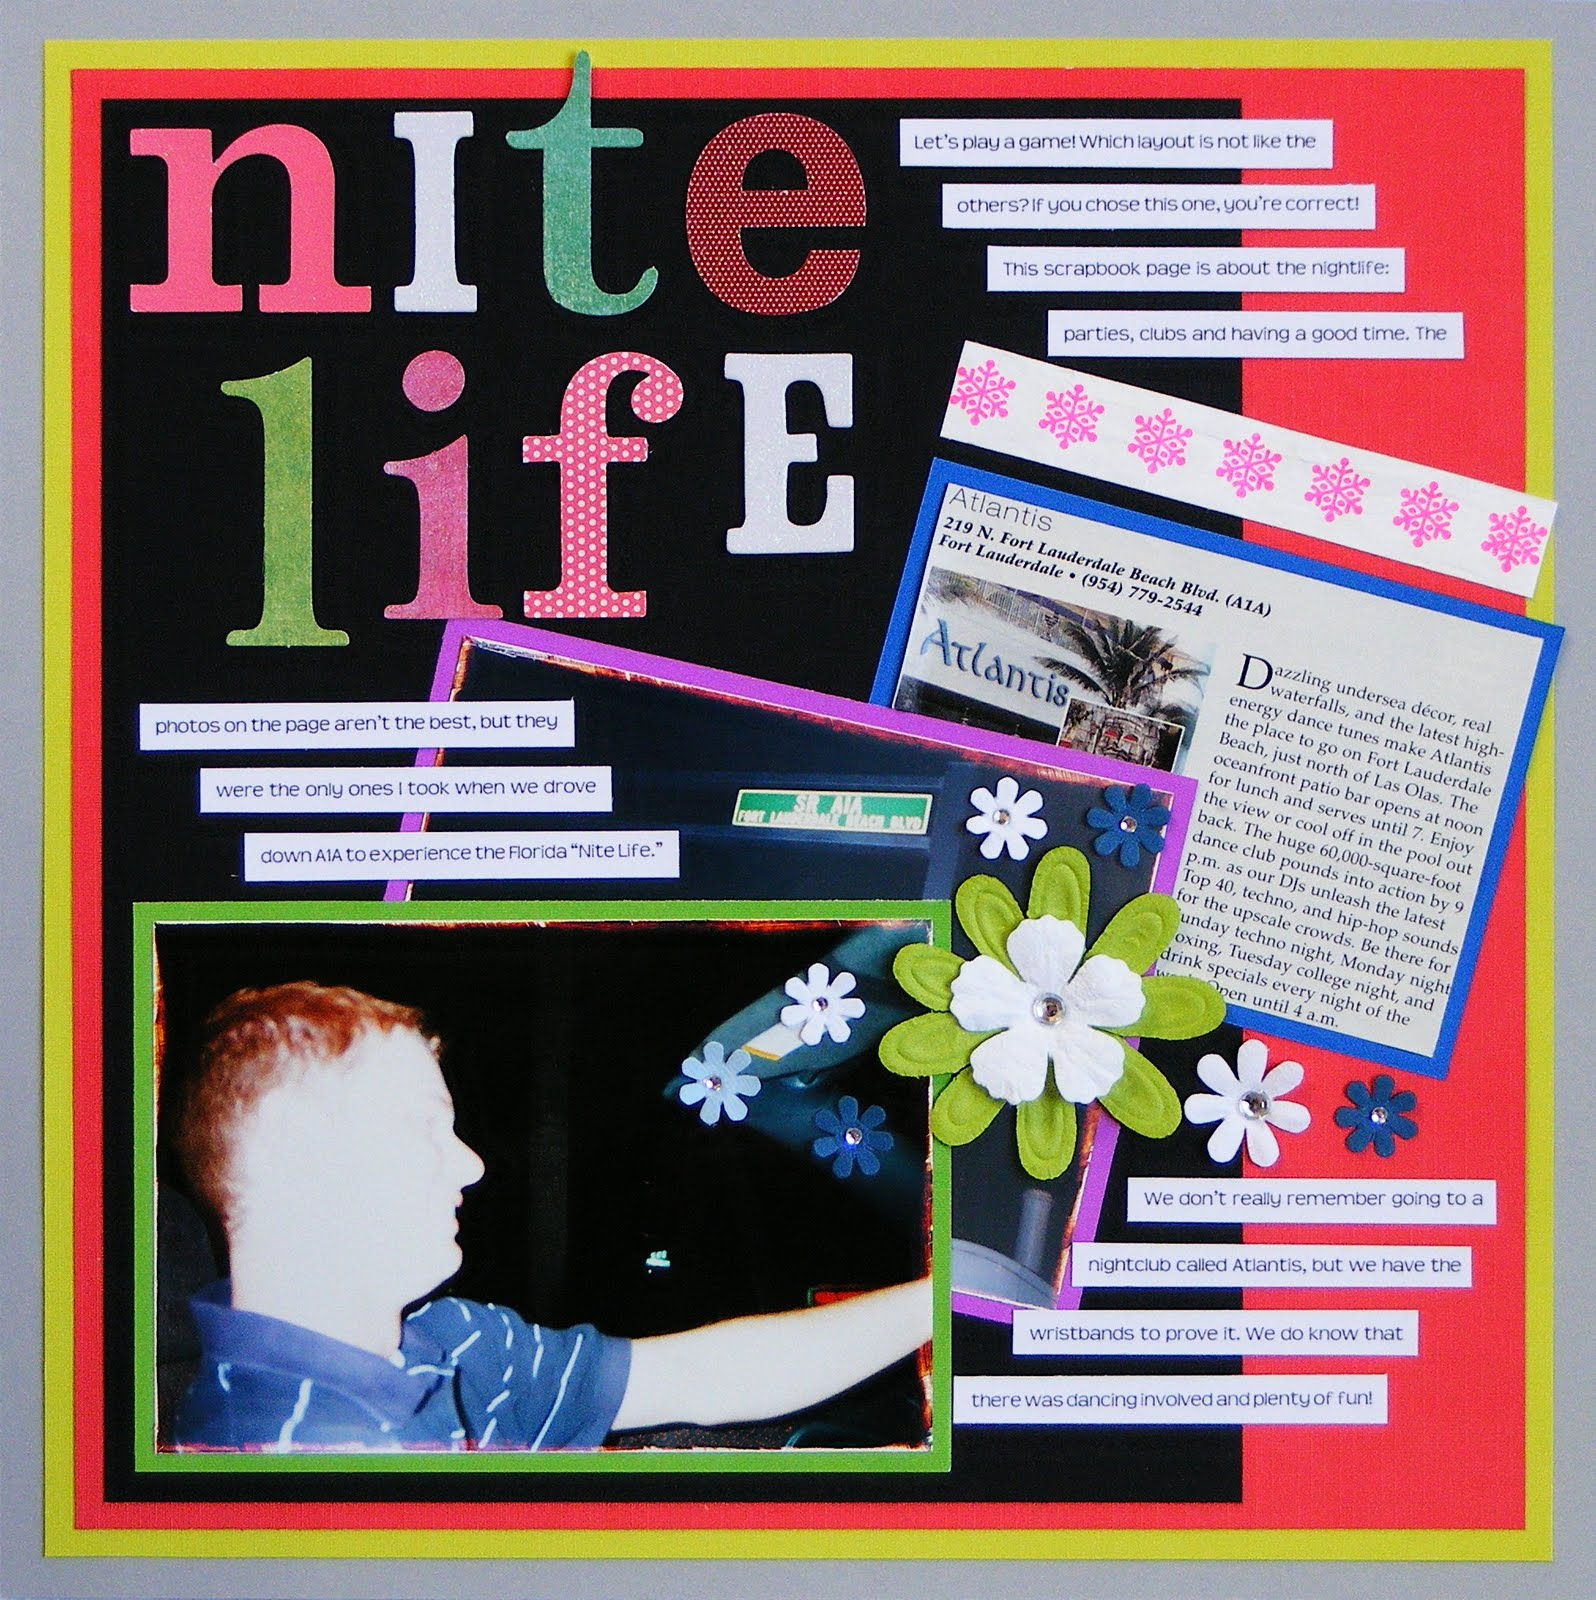 Pregnancy scrapbook ideas journaling - Journaling Let S Play A Game Which Layout Is Not Like The Others If You Chose This One You Re Correct This Scrapbook Page Is About The Nightlife